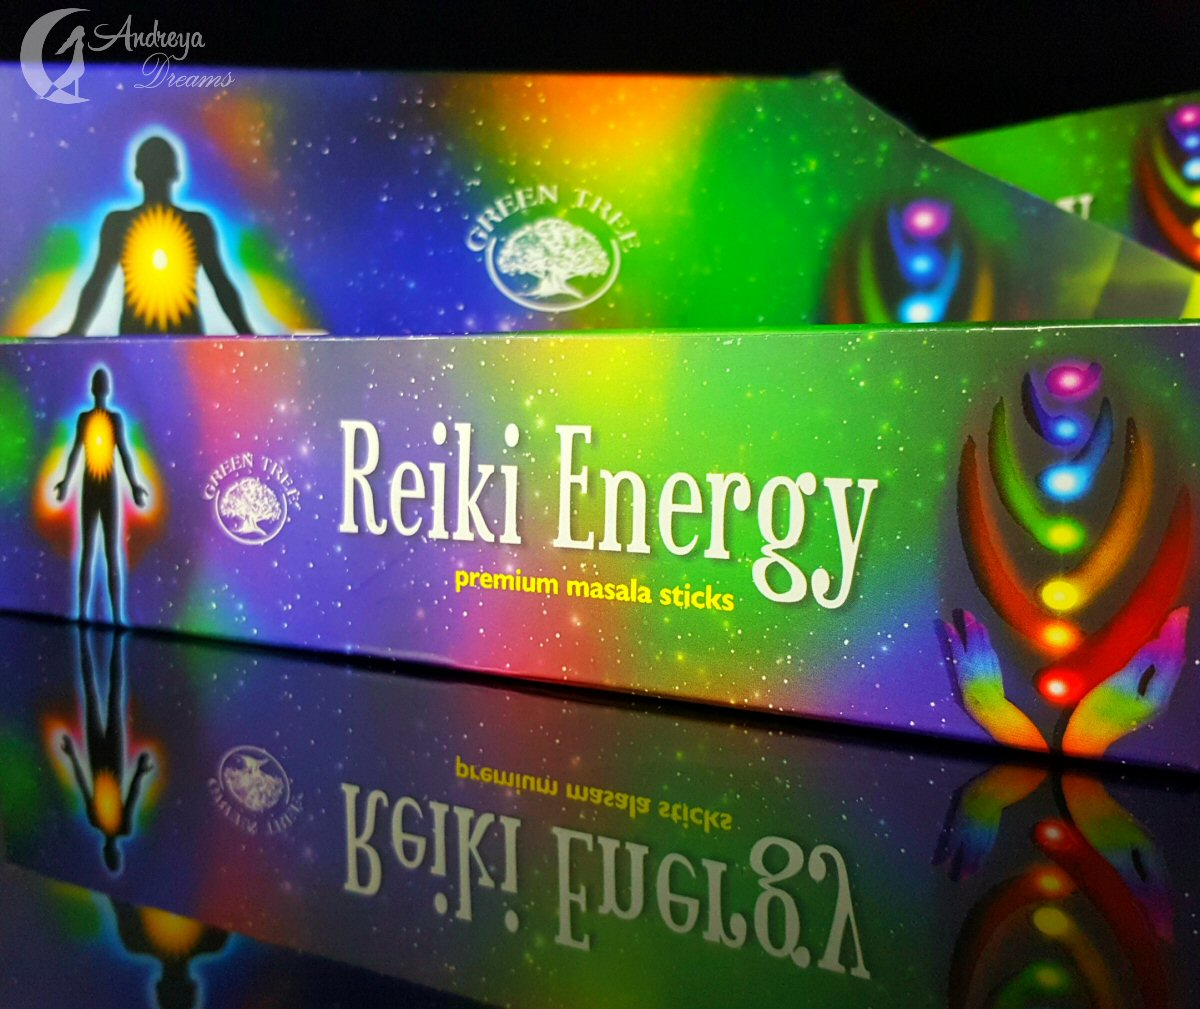 Incenso Reiki Energy